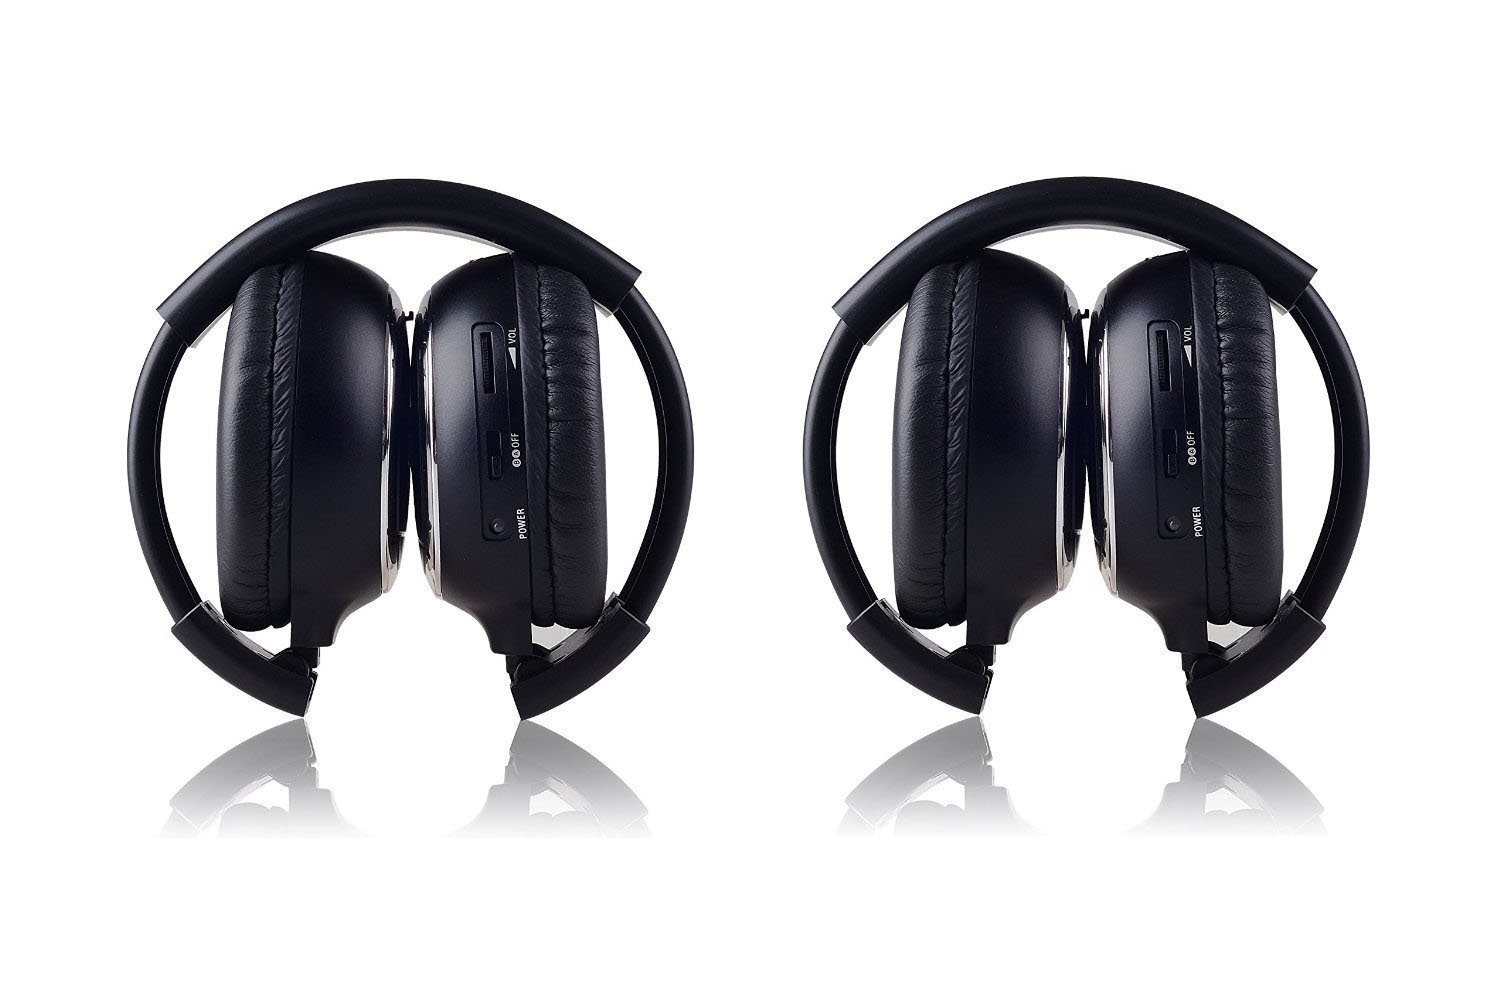 LeaningTech 2 Pack of IR Wireless Two-Channel Foldable Headphone, Two Channel Folding Adjustable Universal Rear Entertainment System Infrared Headphones for in Car TV Video Audio Listening by LEANINGTECH